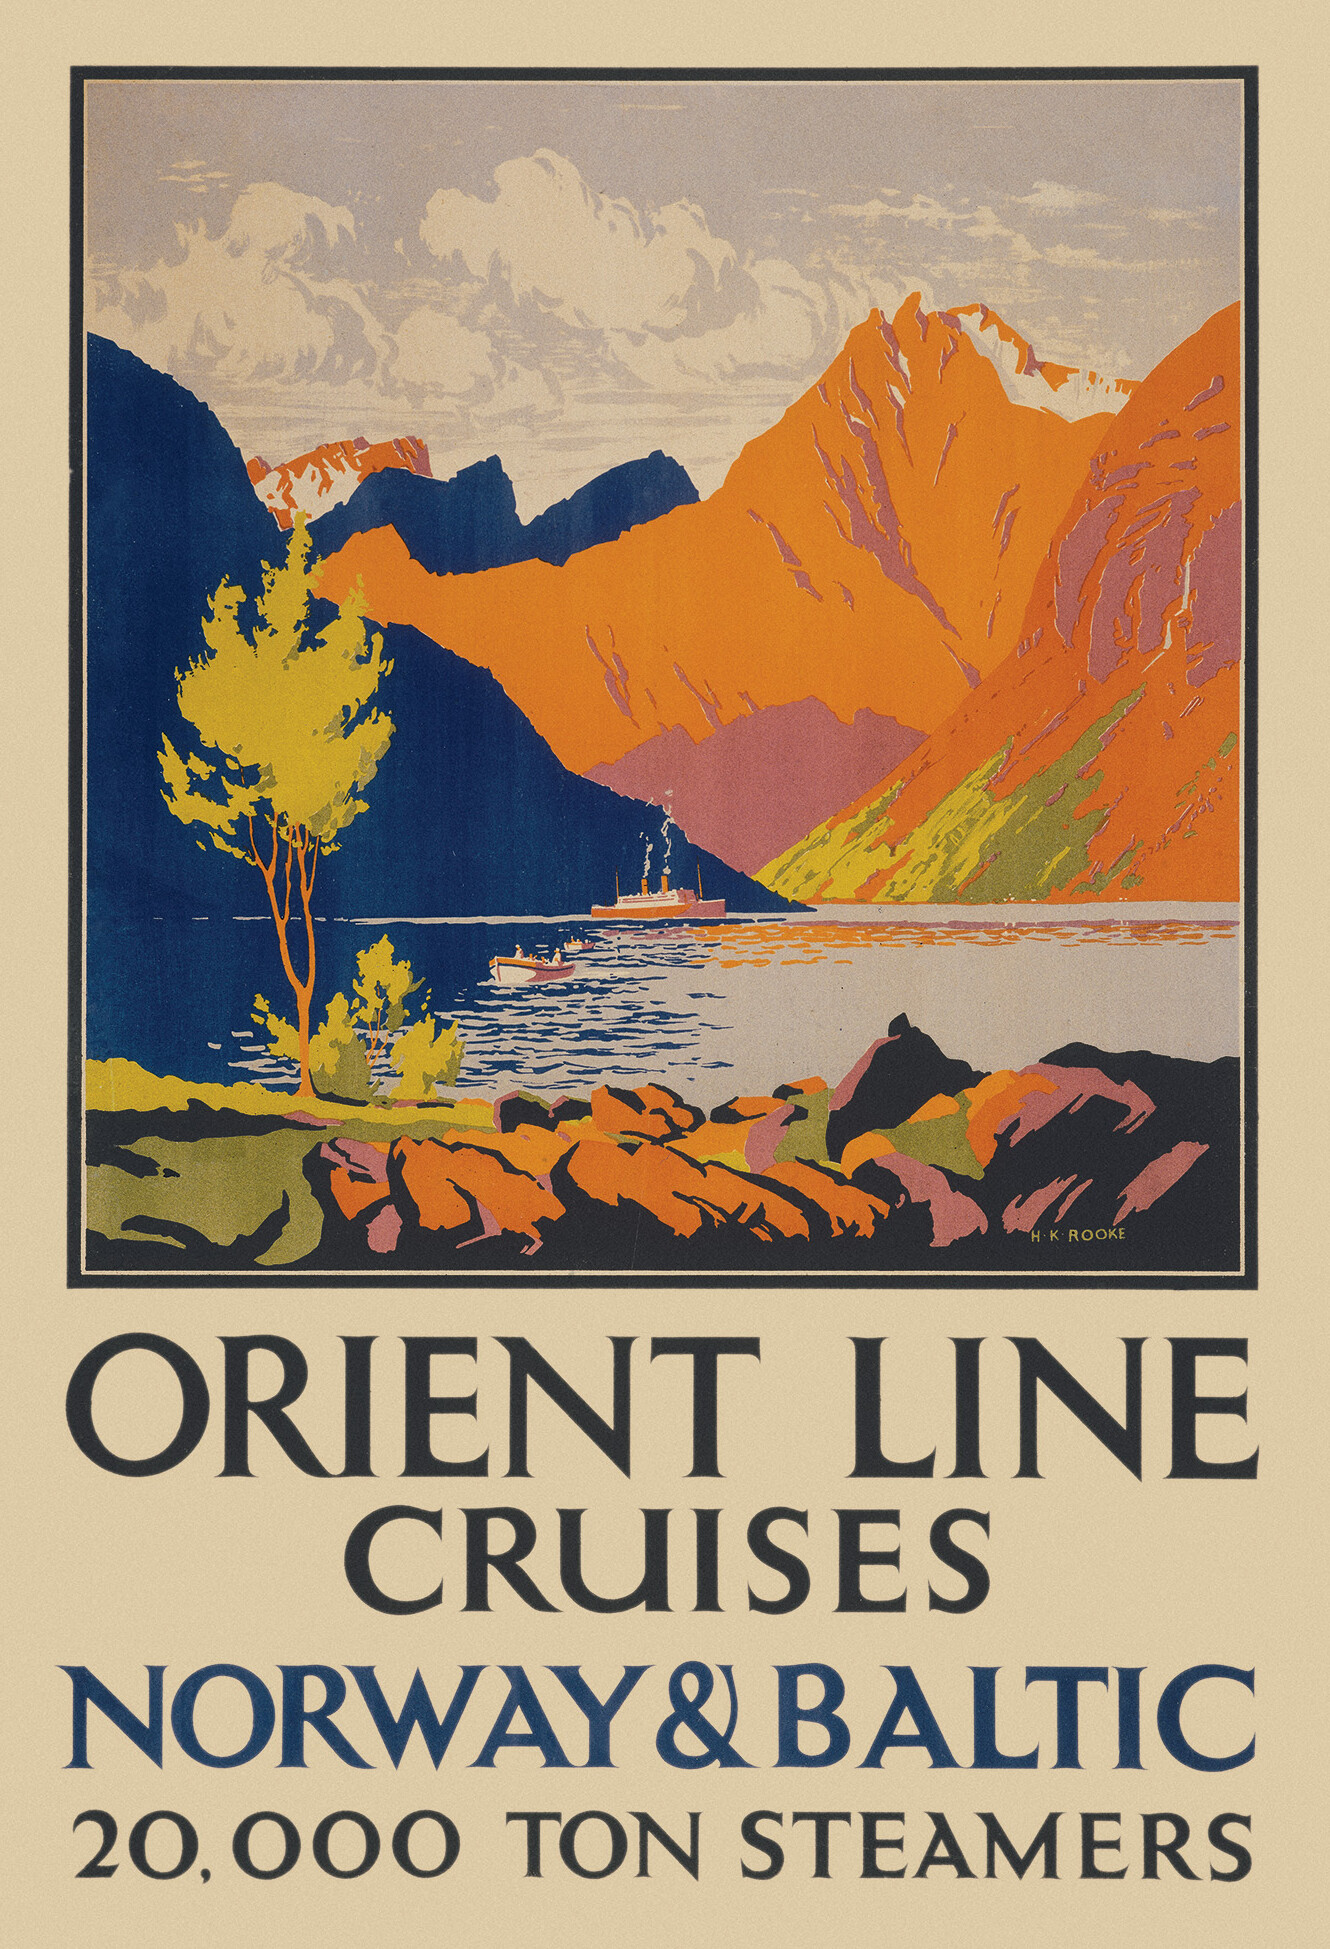 Orient Line to Norway